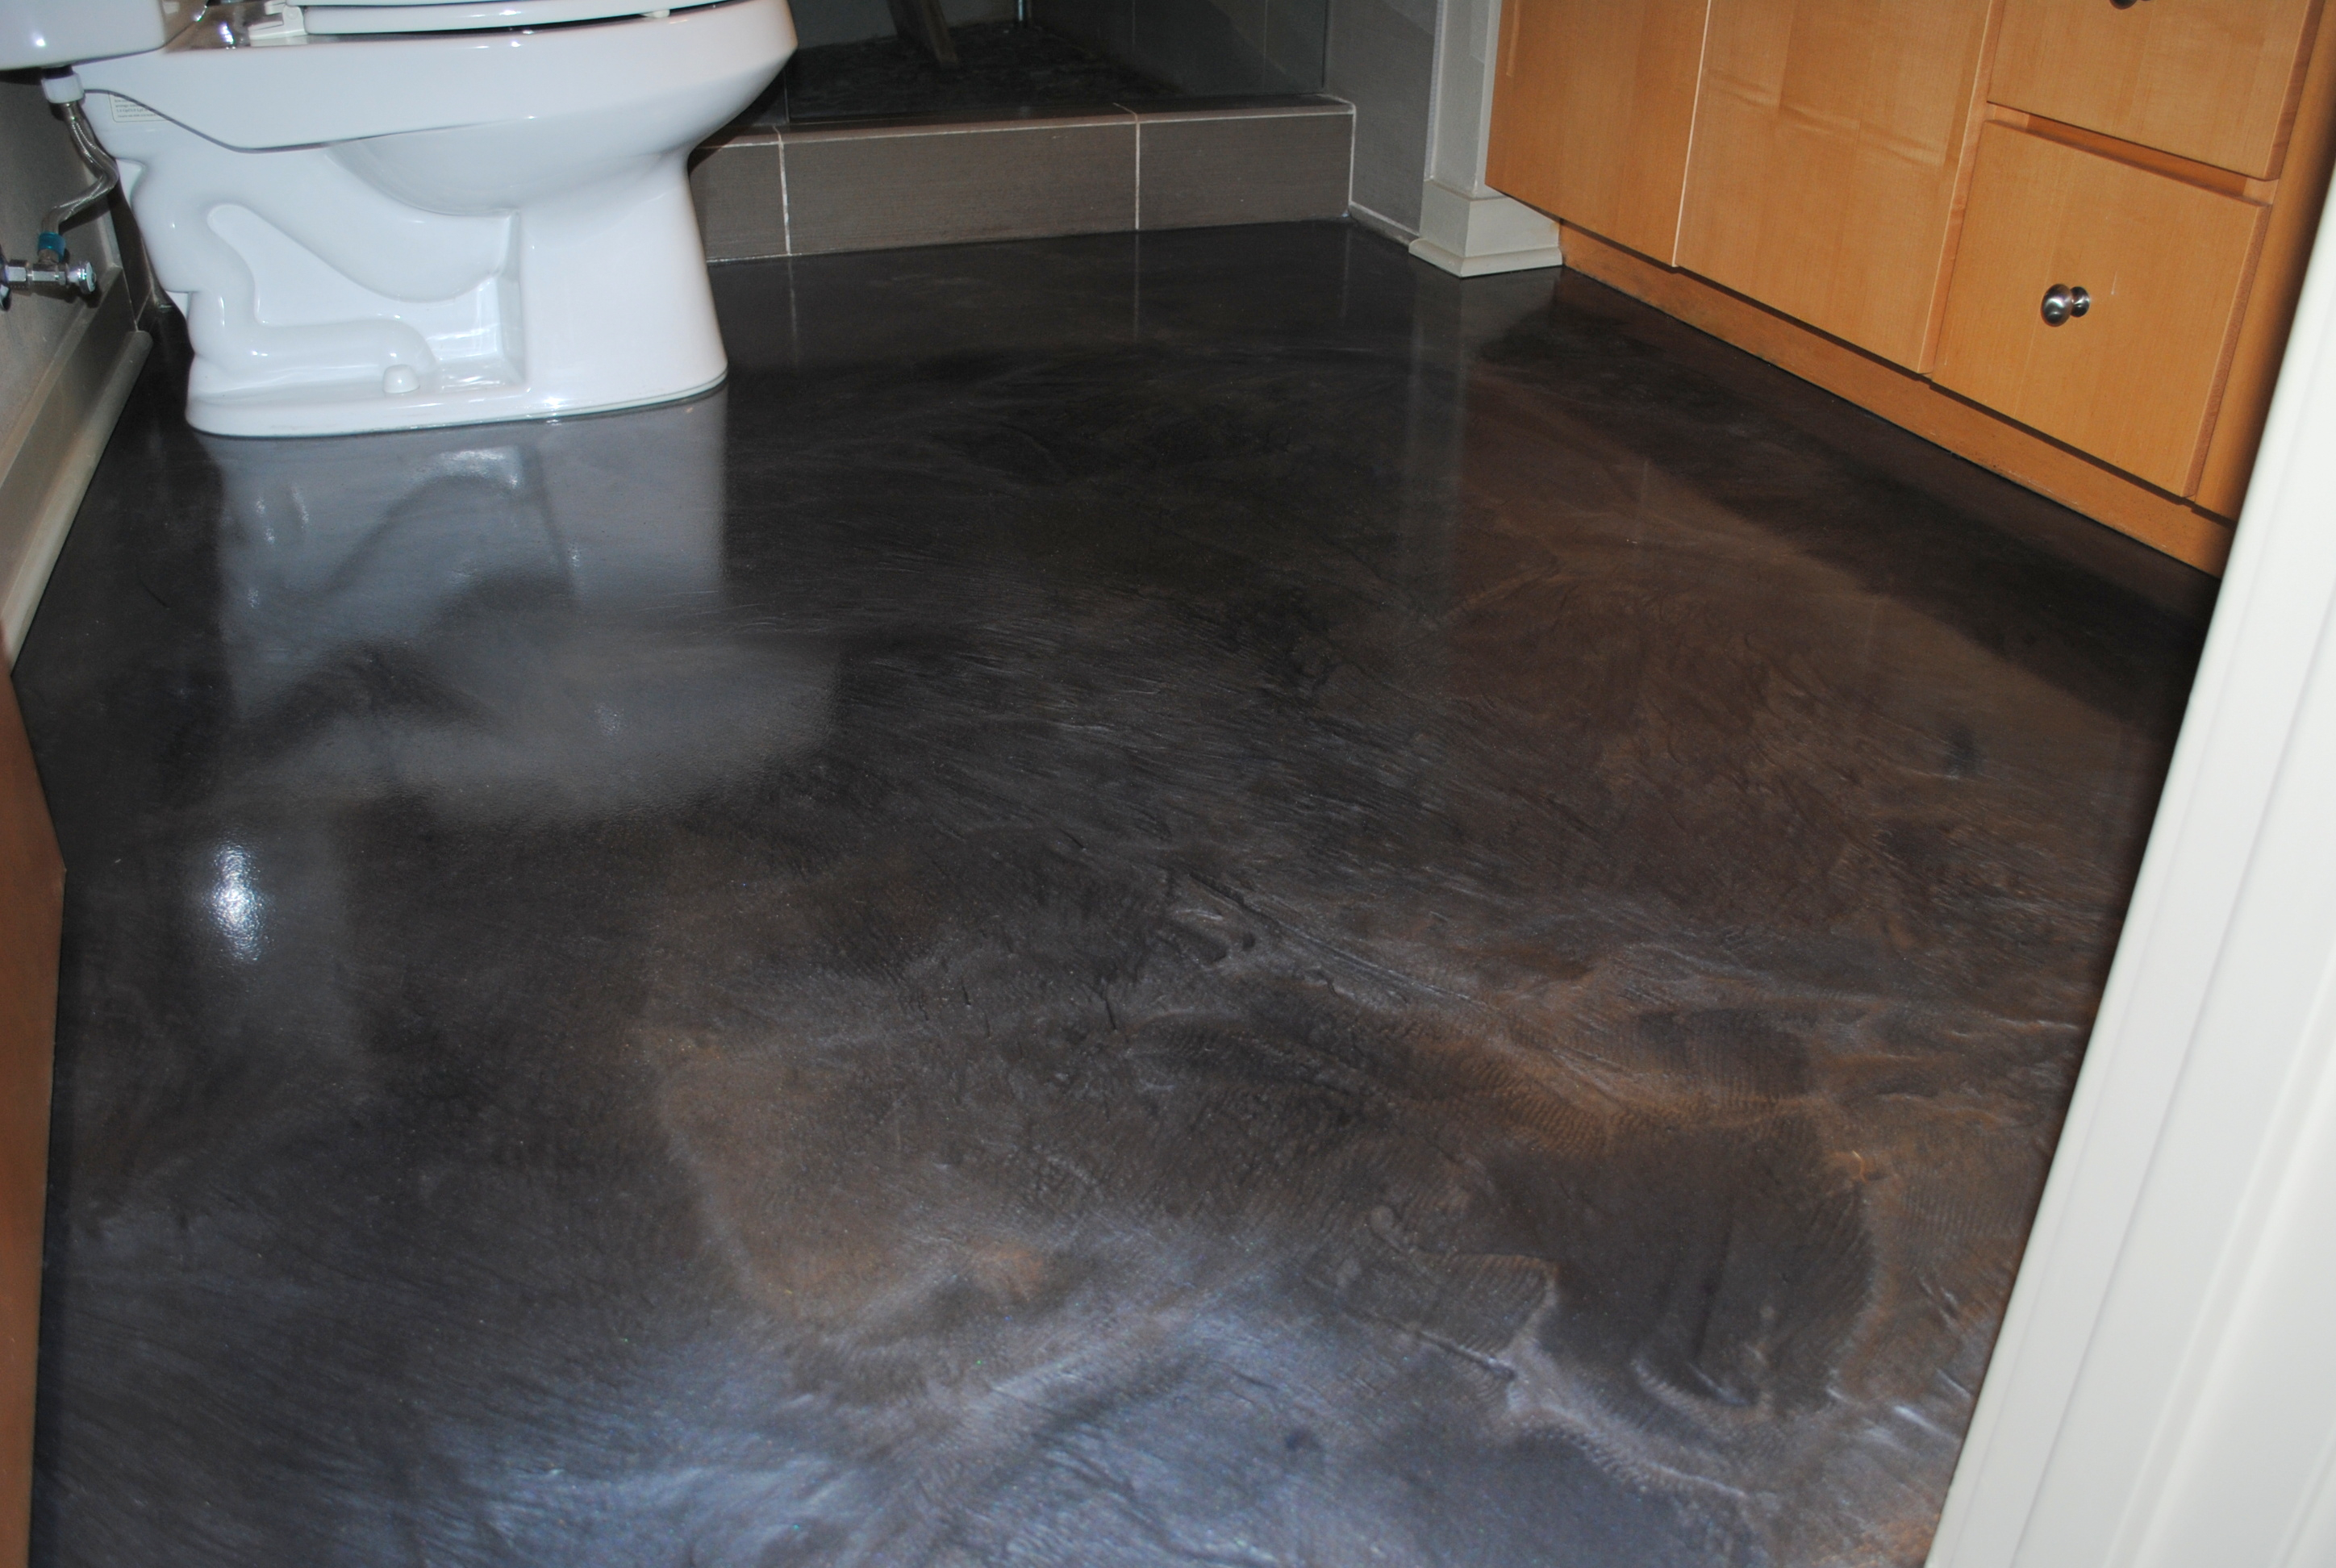 Cool The Rise Of Metallic Epoxy And Designer Flooring « Seattle Surfaces intended for Epoxy Bathroom Floor